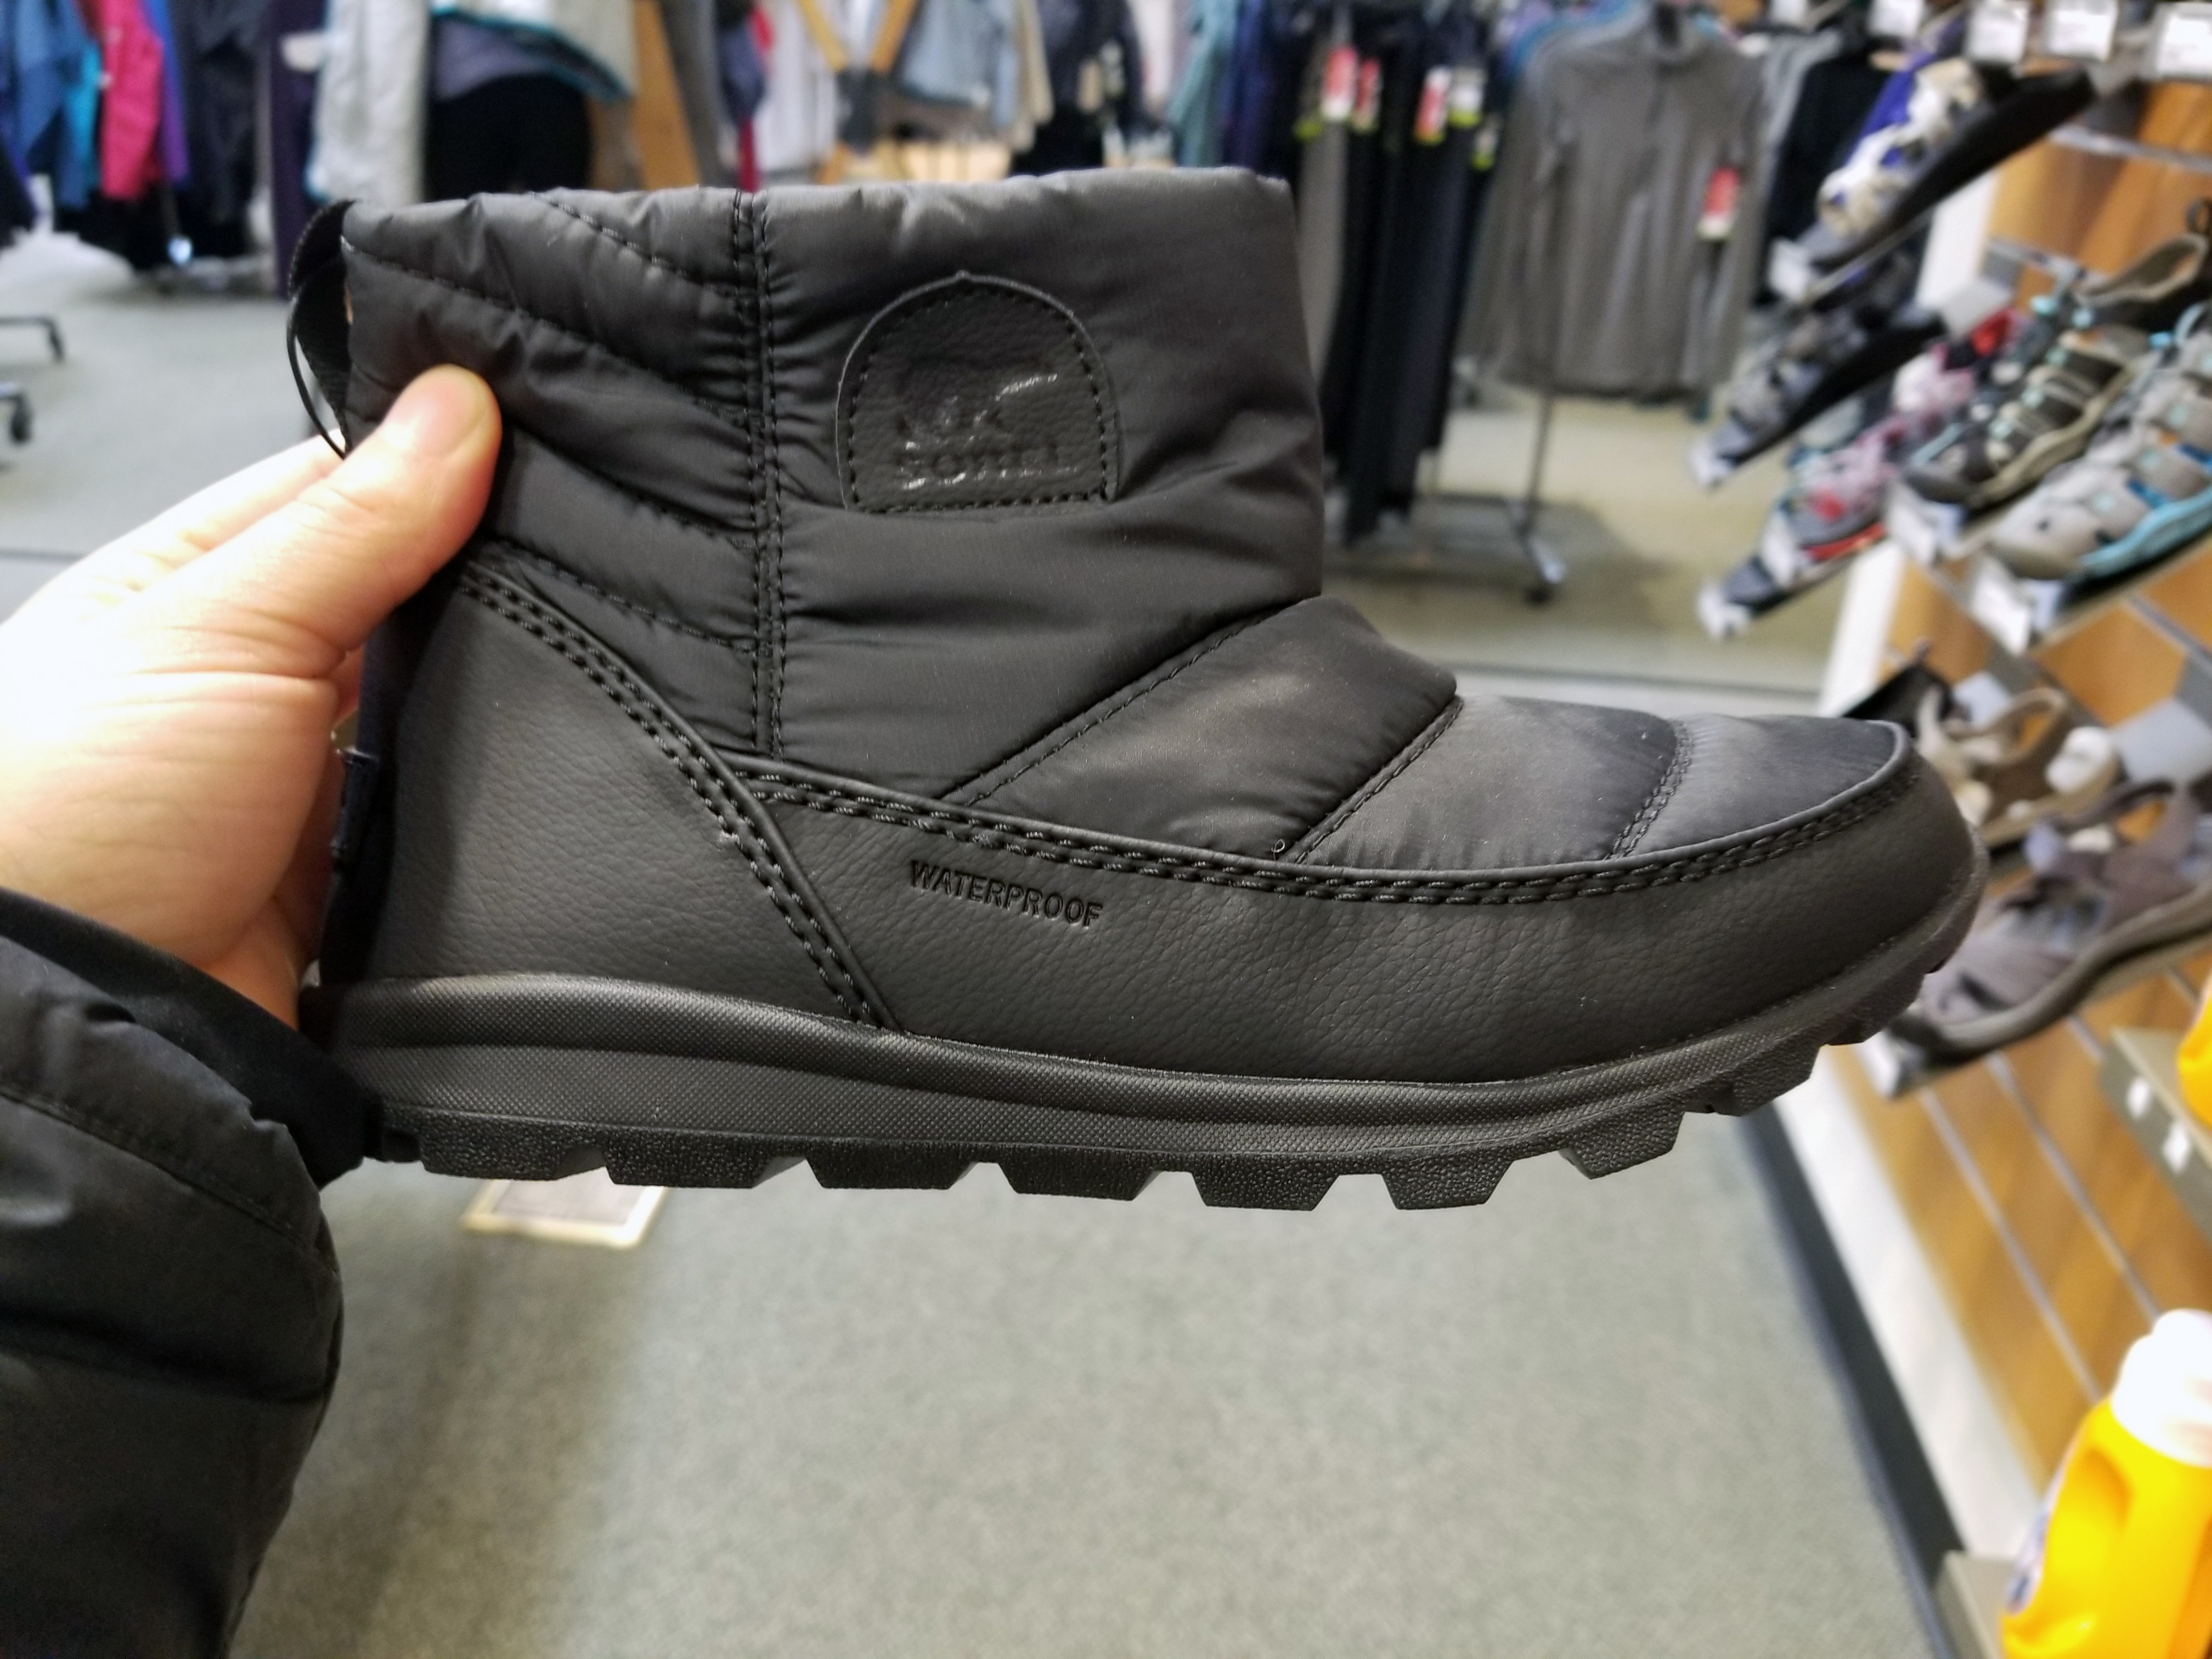 1db5fbb0b Sorel Boots, as Low as $60 Shipped at REI! - The Krazy Coupon Lady